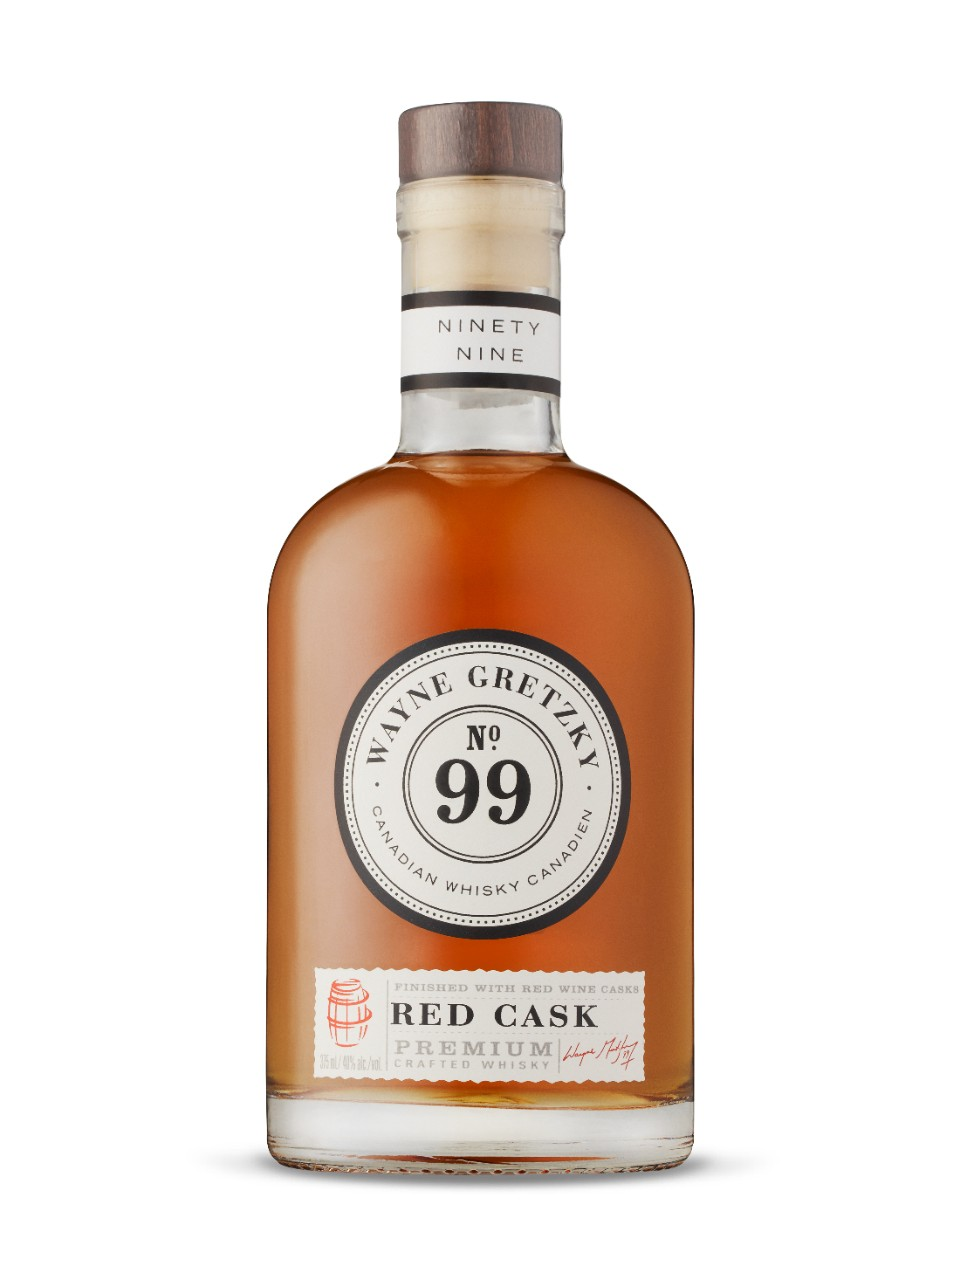 Wayne Gretzky Red Cask Whisky from LCBO